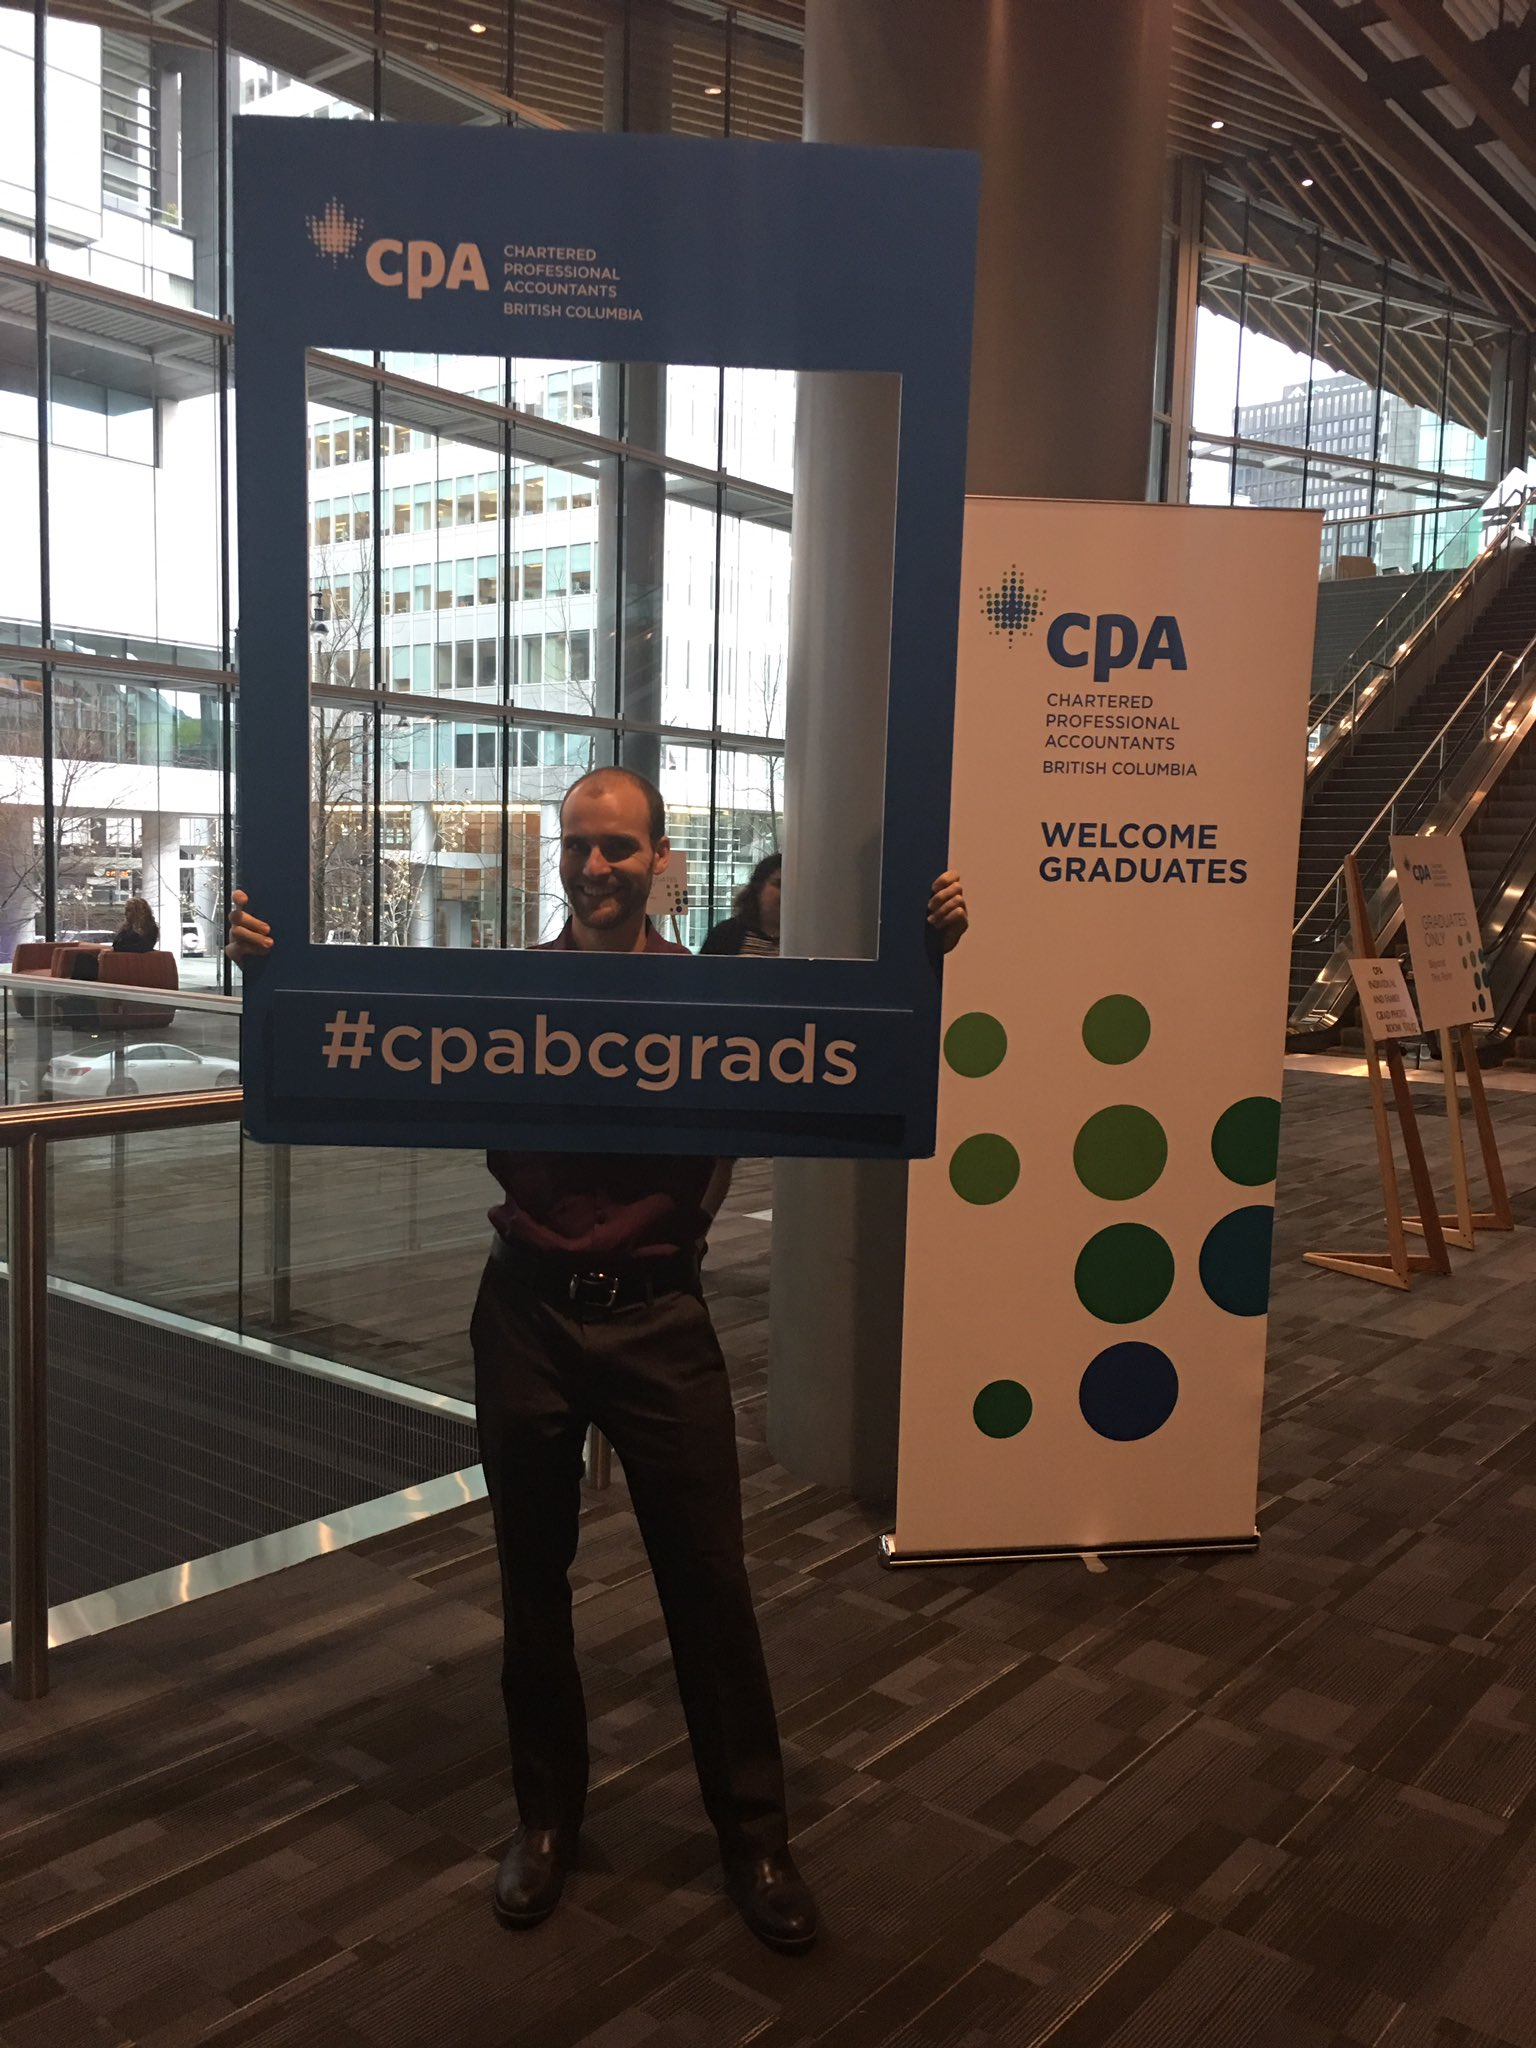 Congratulations #cpabcgrads on your fabulous day @cpa_bc!  #Finally https://t.co/W8cFYzlh6k